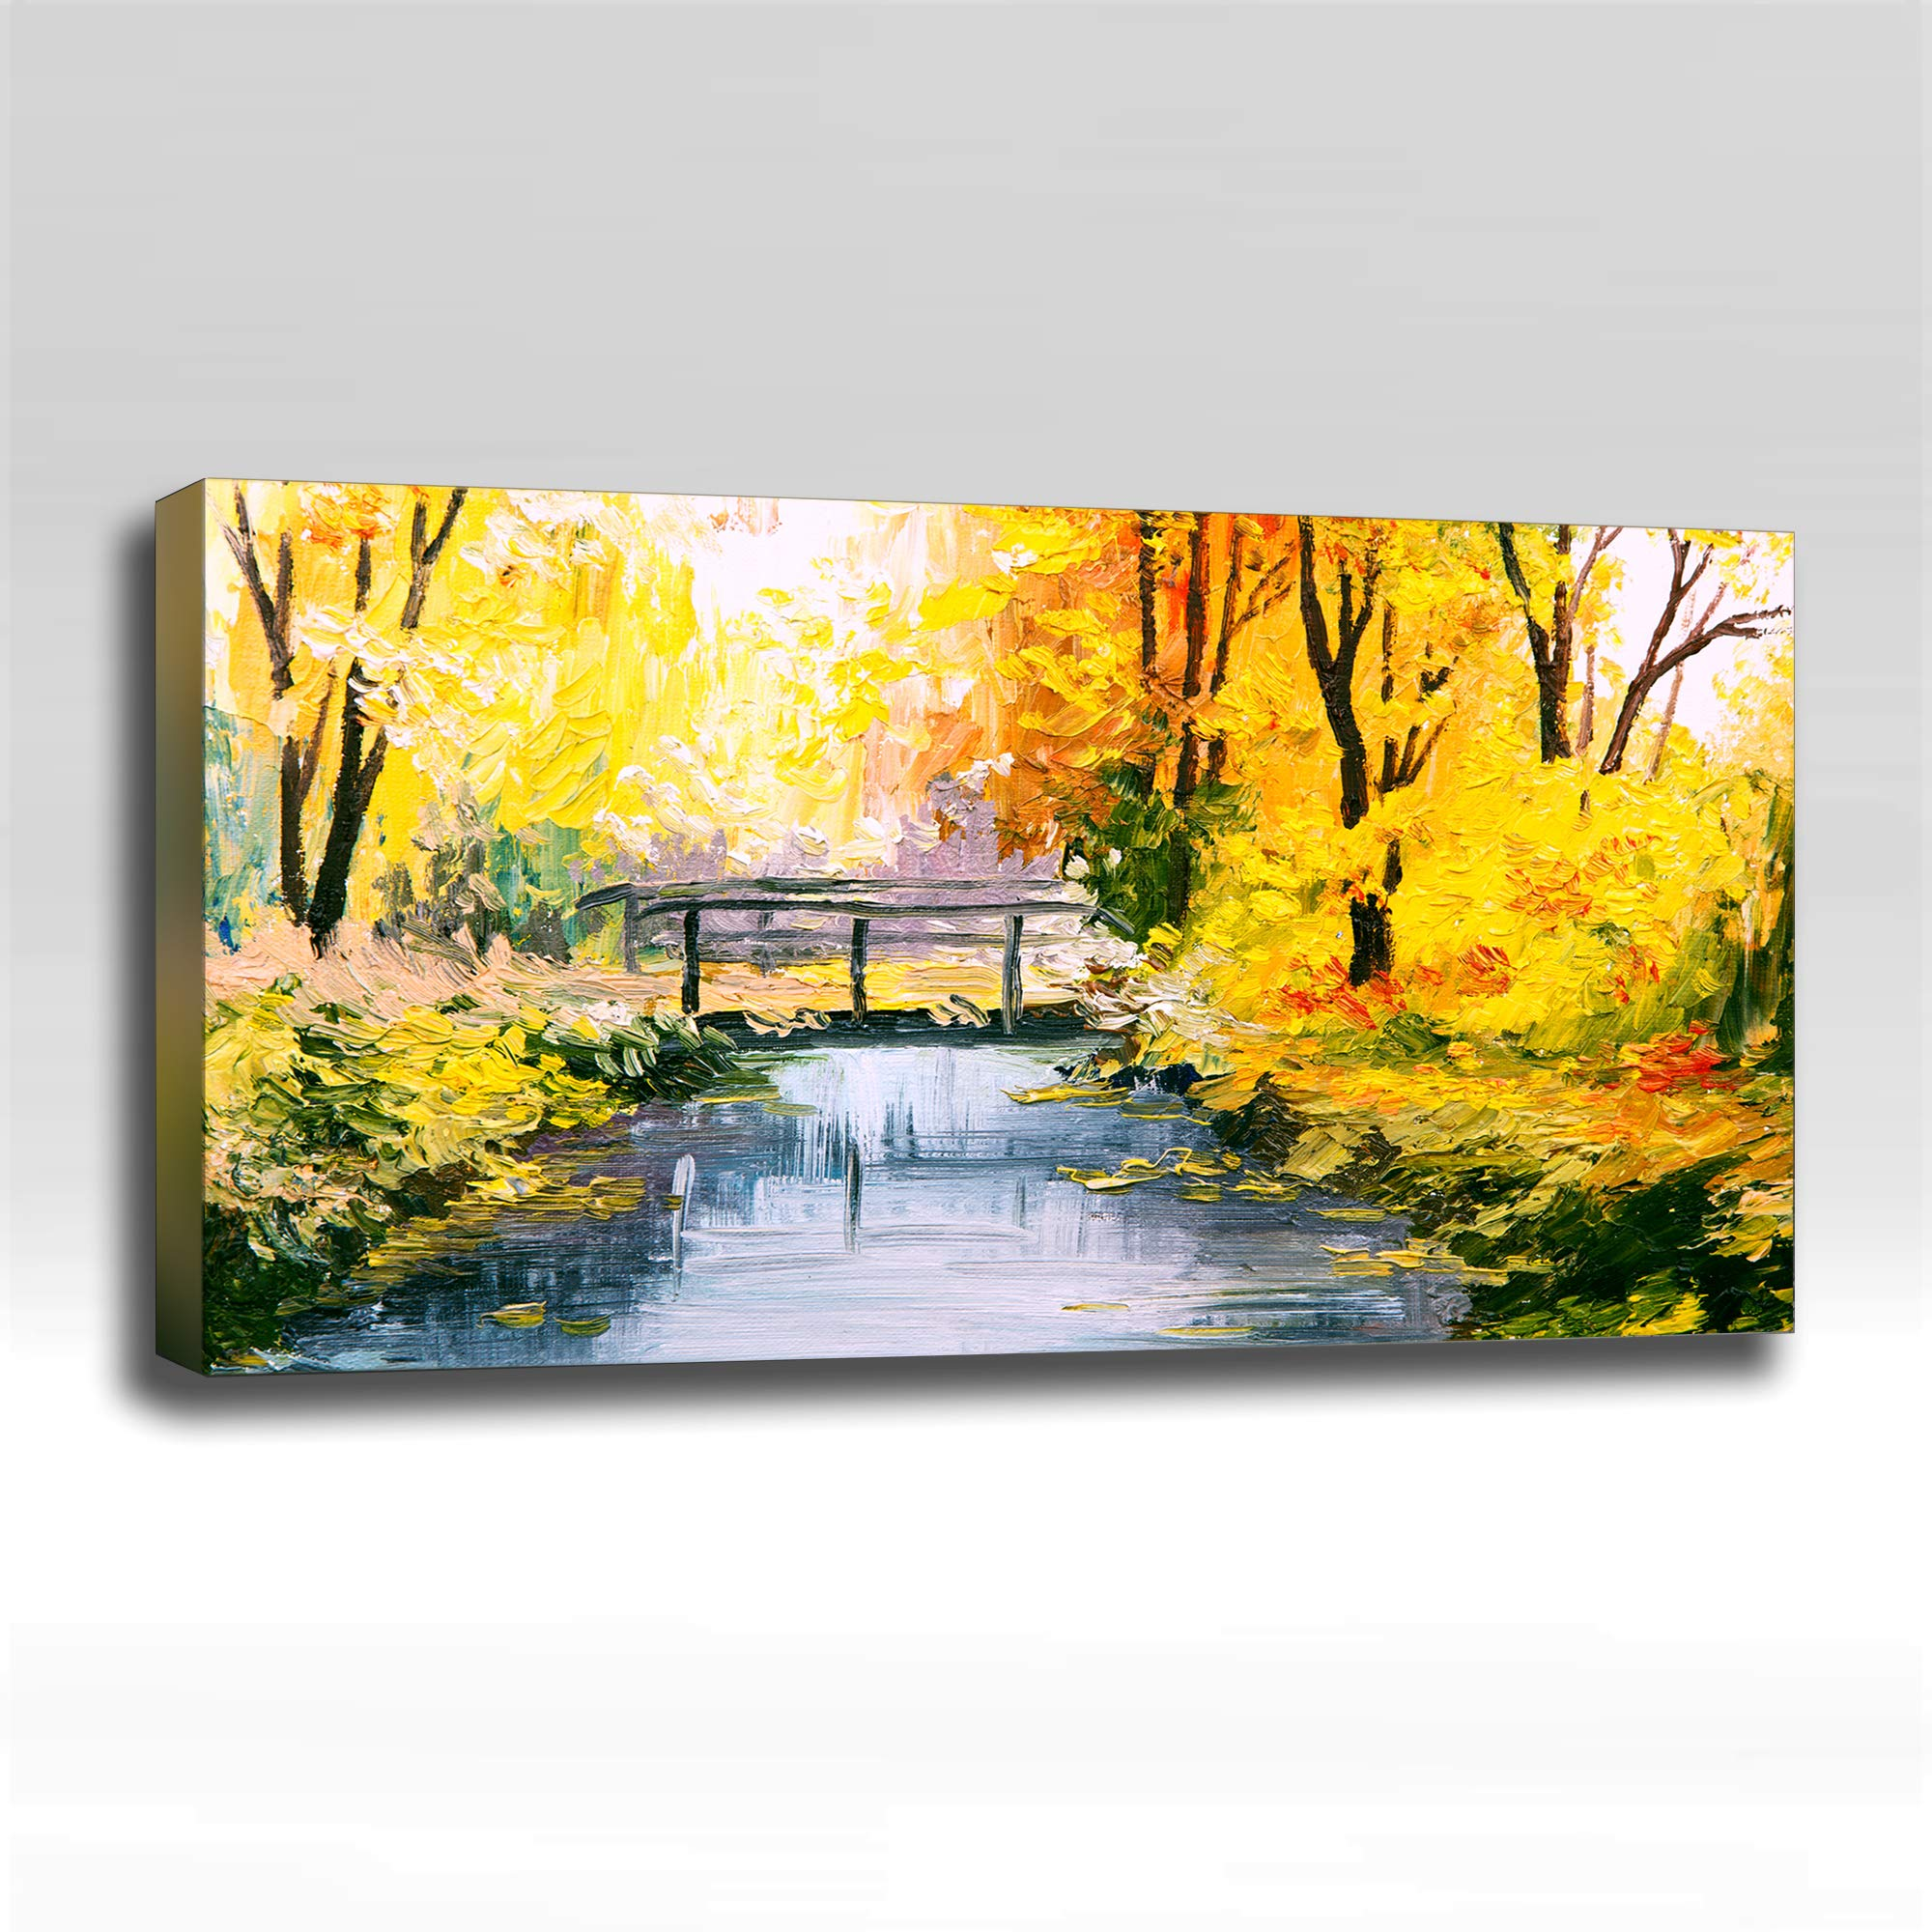 Autumn Bridge Painting - Ready Made 4'x2'x2'' Acoustic Art Panel : Includes all Mounting Hardware.